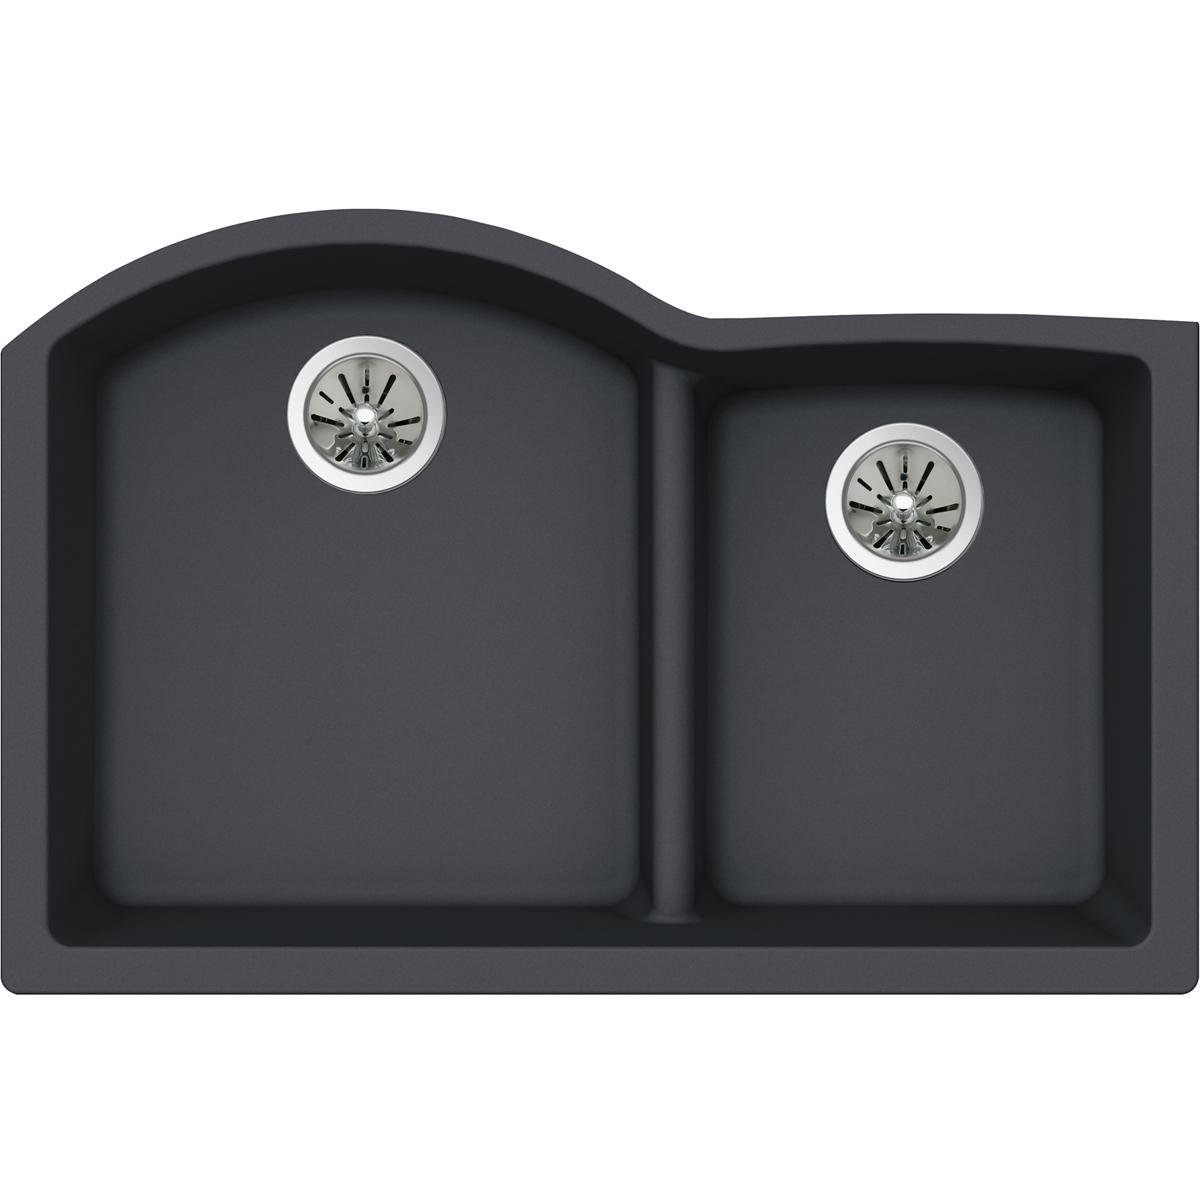 Elkay Quartz Luxe ELXHU3322RCH0 Charcoal Offset 60/40 Double Bowl Undermount Sink with Aqua Divide